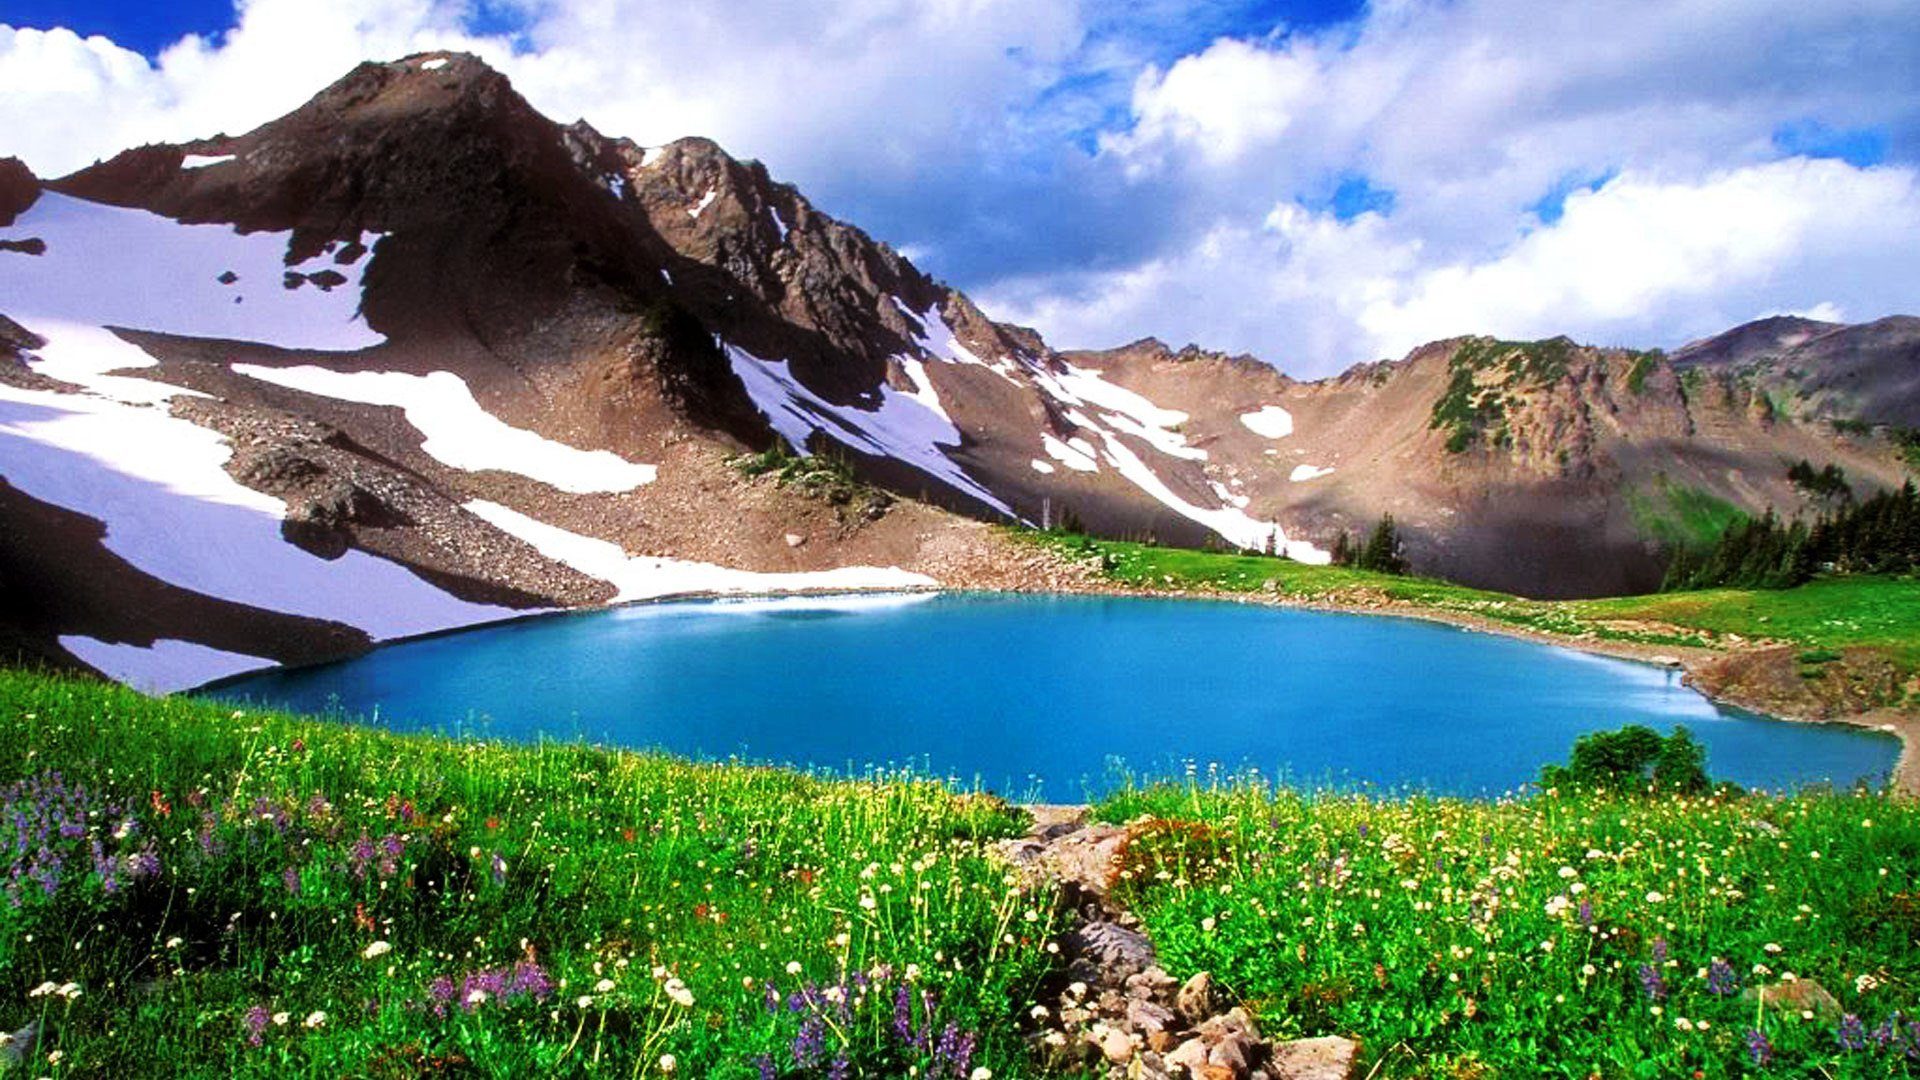 Pakistan Wallpapers Photos And Desktop Backgrounds Up To 8k 7680x4320 Resolution